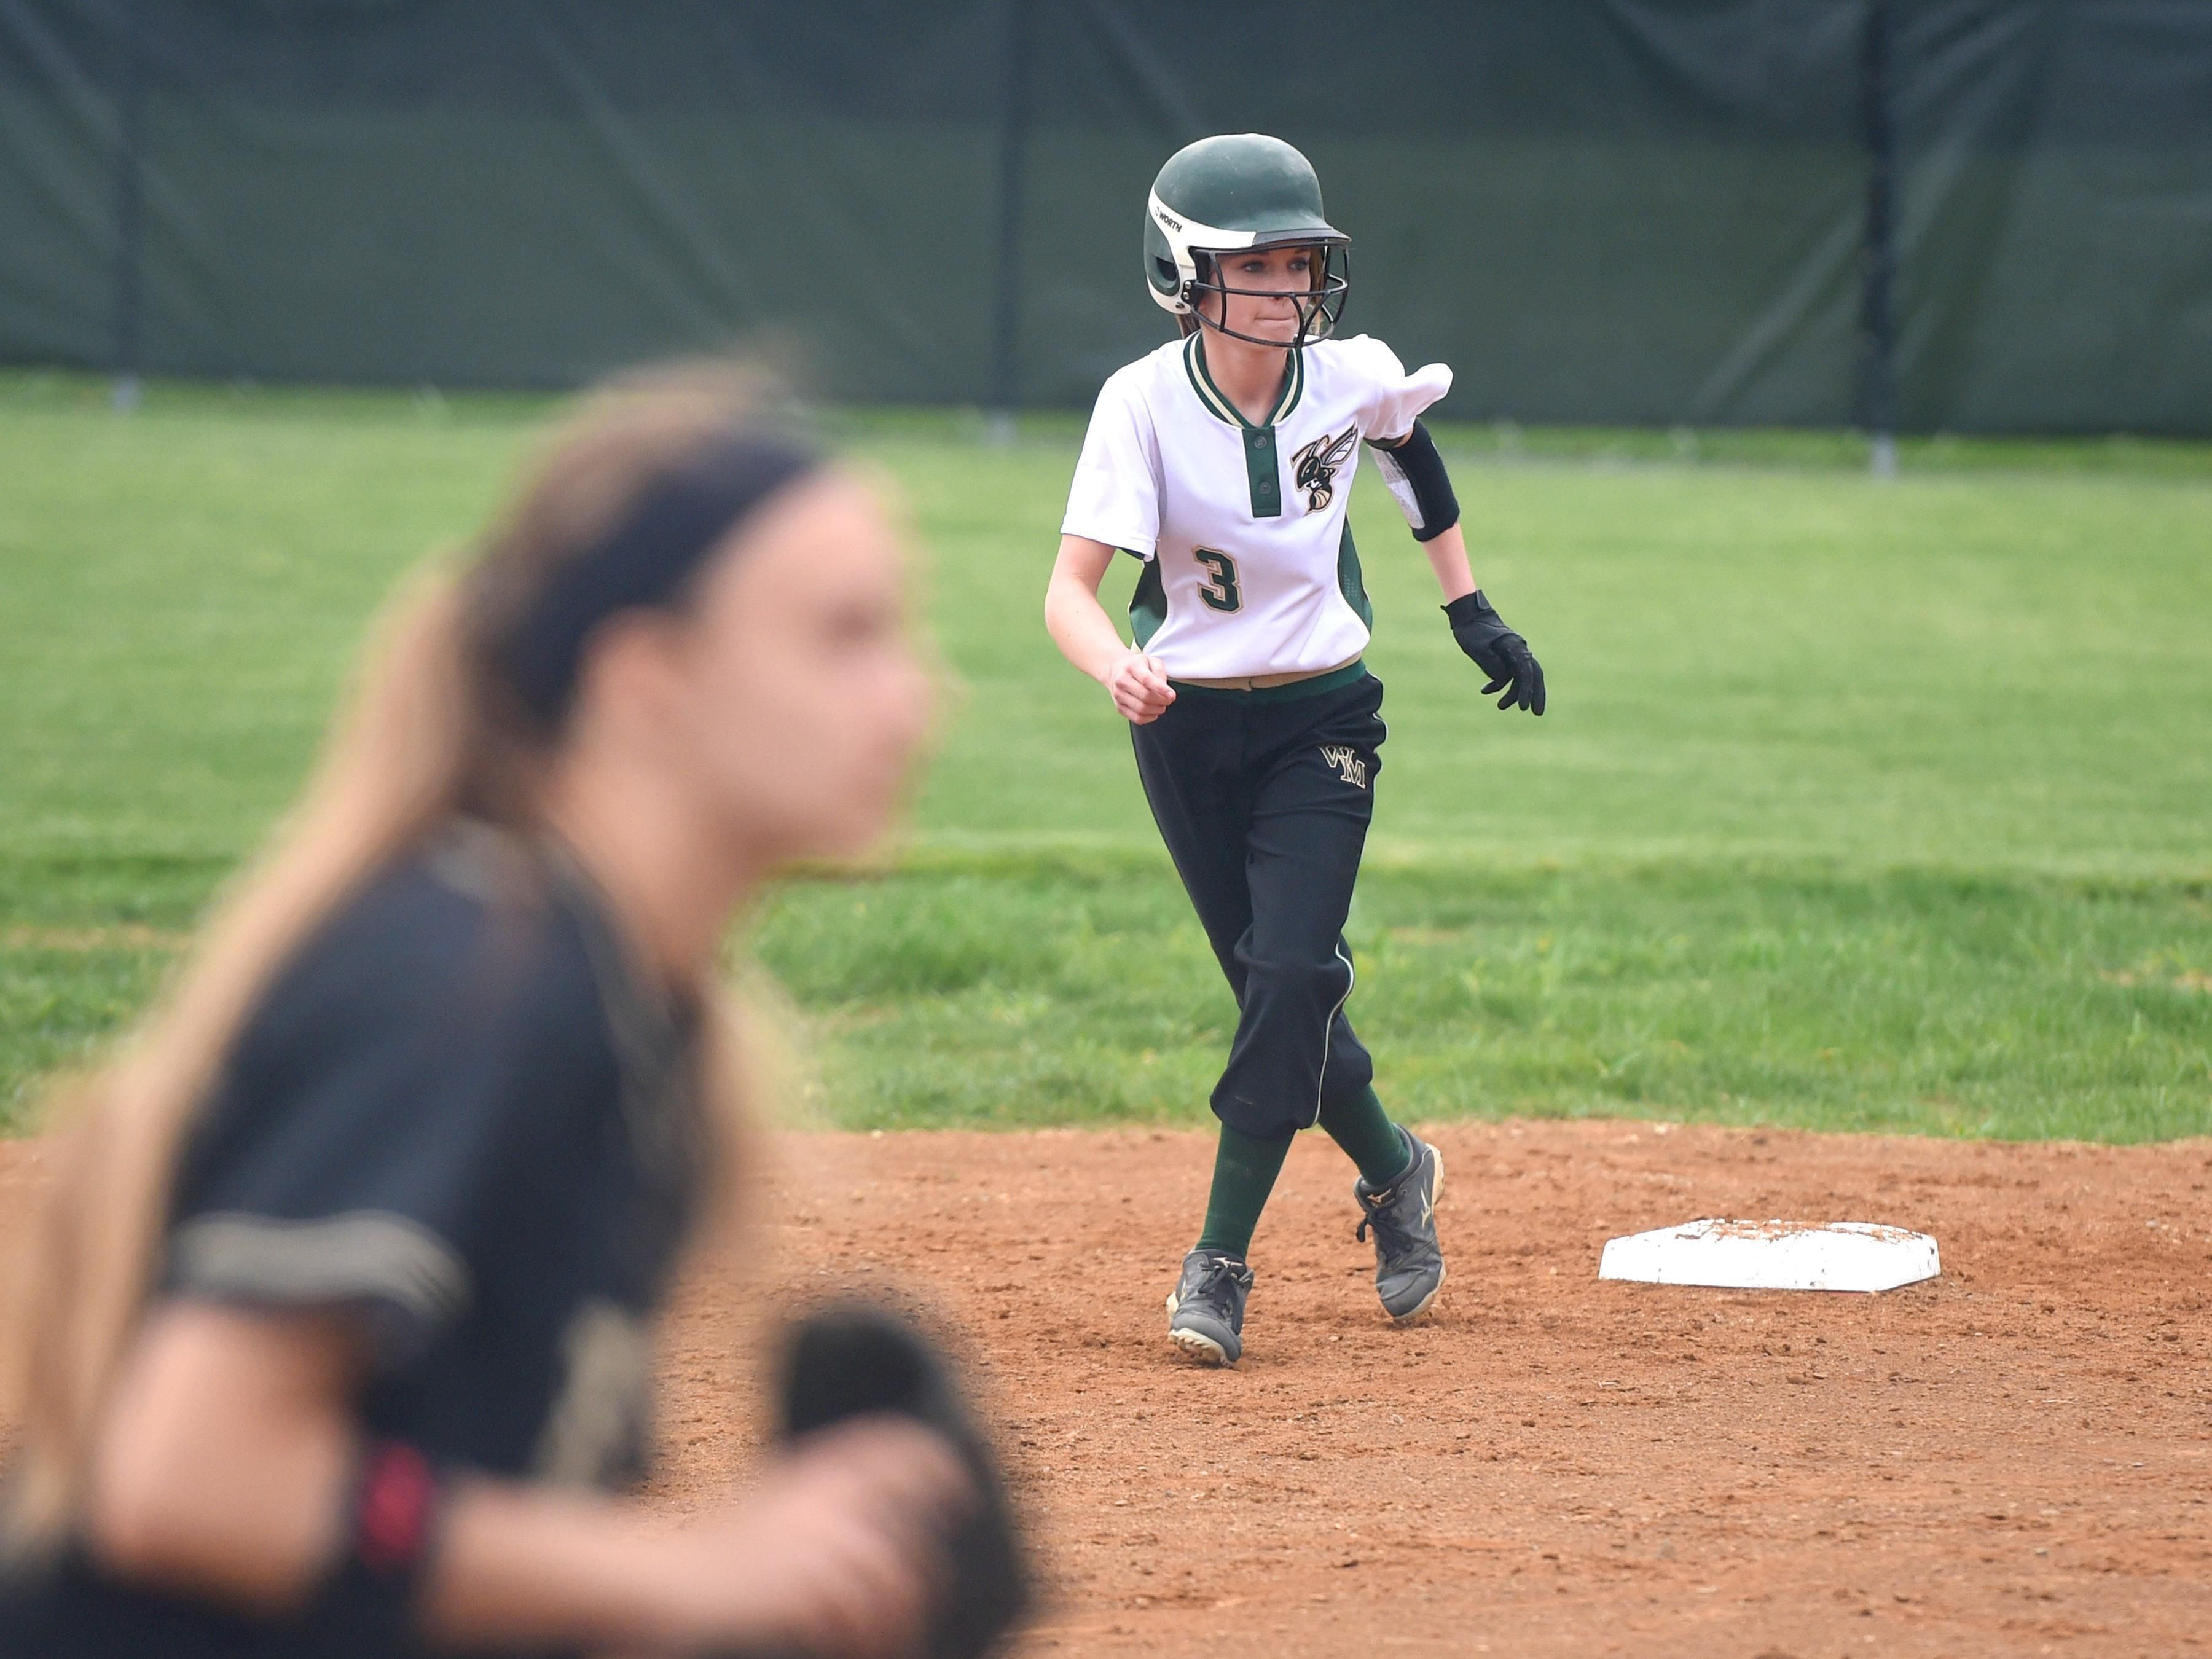 Wilson Memorial's Morgan McDowell watches the pitch as she takes a lead off second base in the second inning during a softball game played in Fishersville on Friday, April 1, 2016.